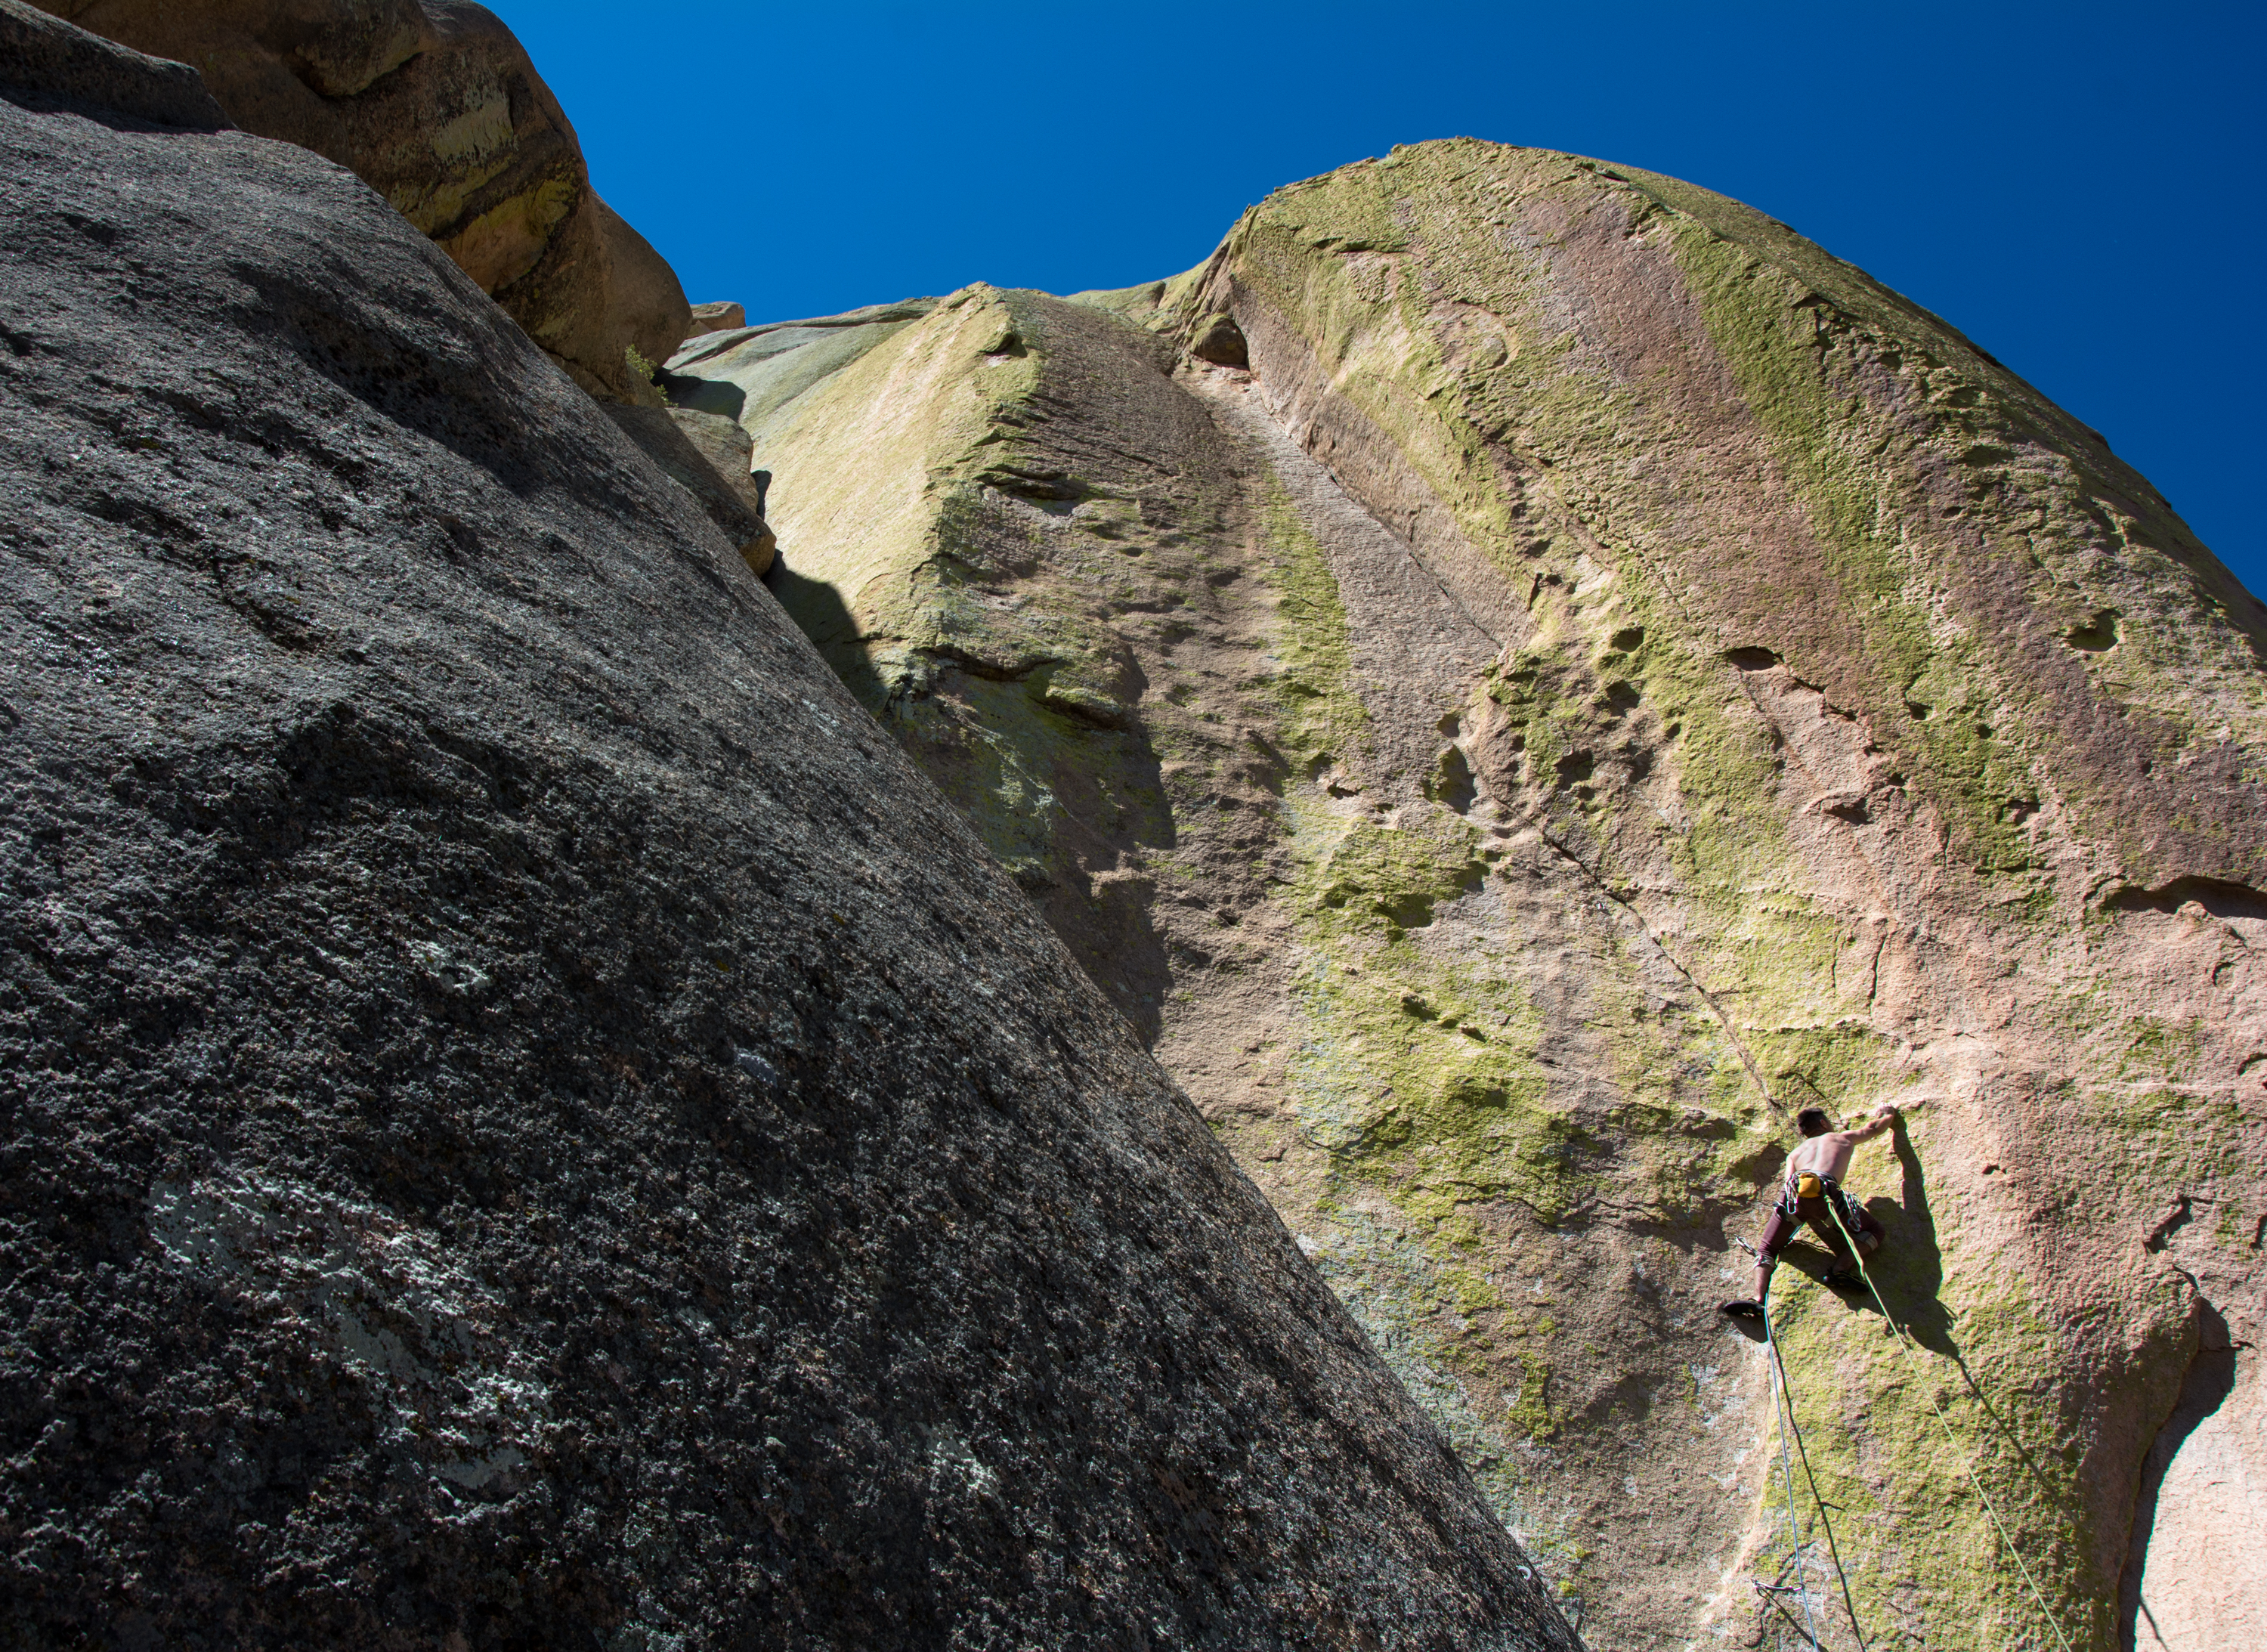 Rock climbing at Cochise Stronghold amid the spirit of the Apache